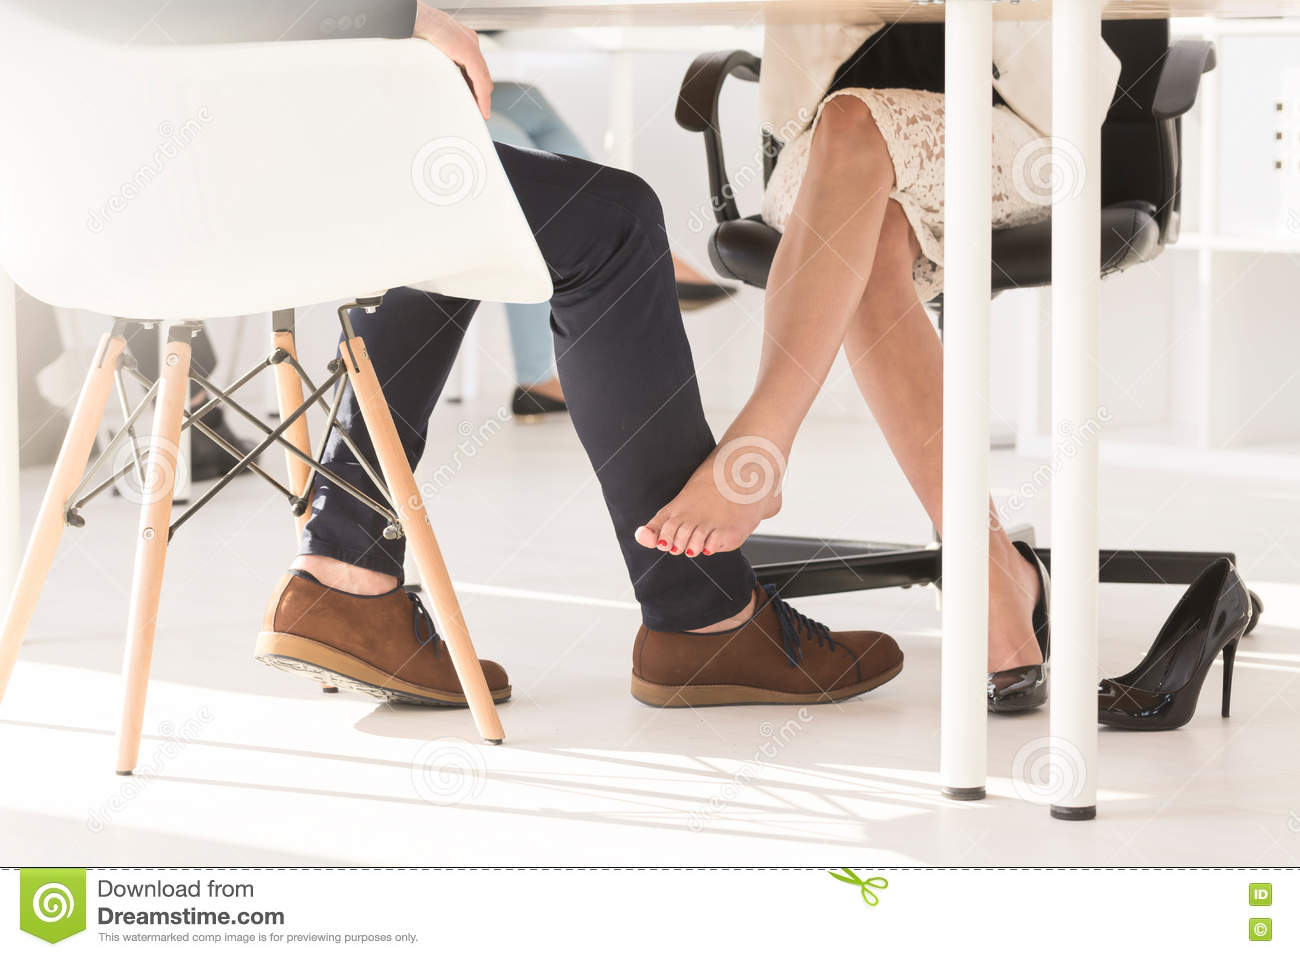 Legs Under Table Stock Photos Royalty Free Images